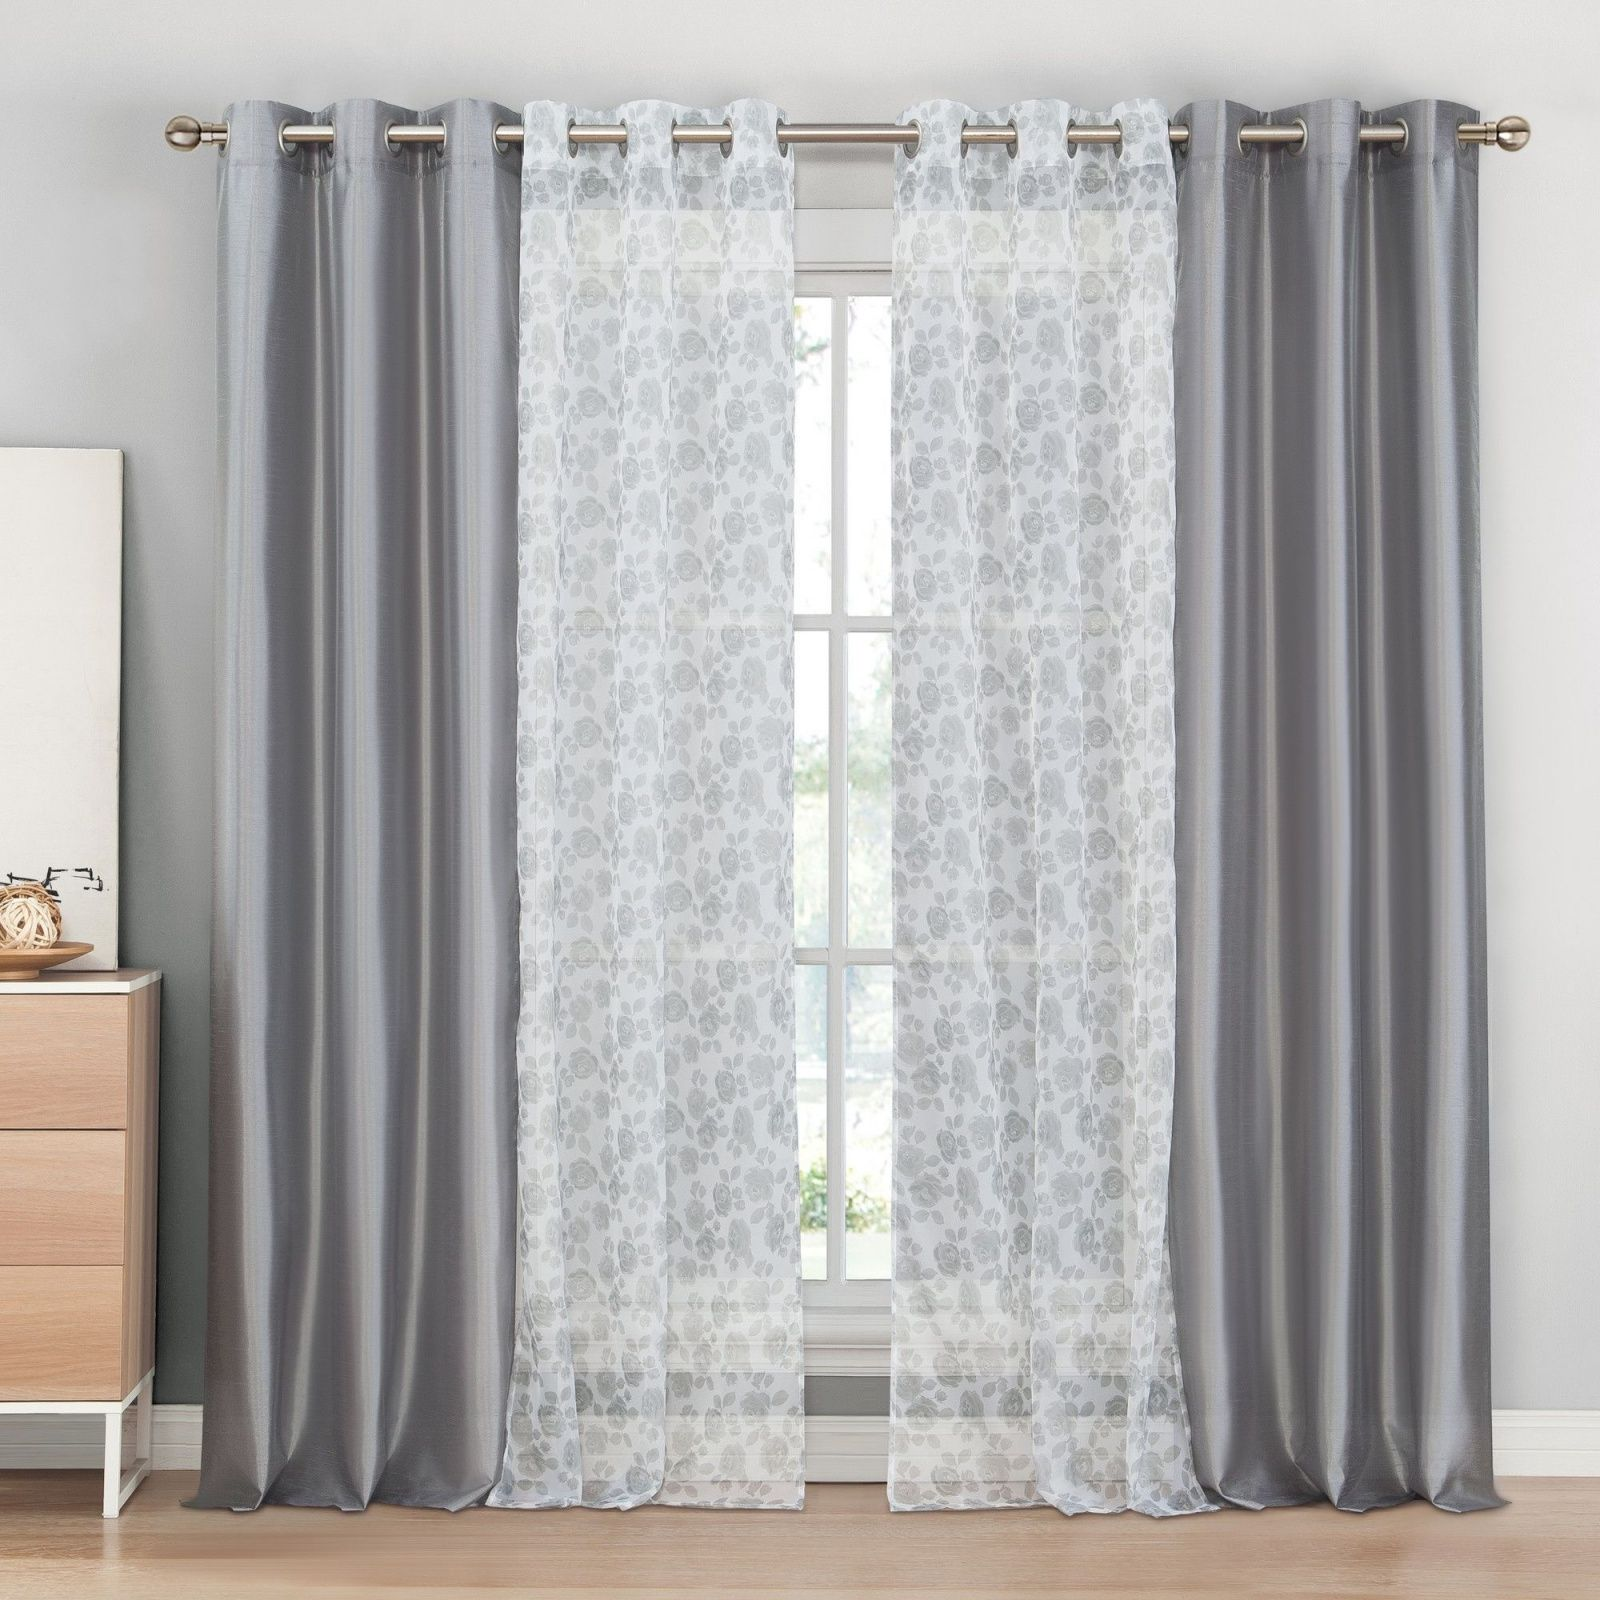 Beautiful Windows Curtains Gray In 2020 Drapes Curtains Curtains Window Curtains Living Room